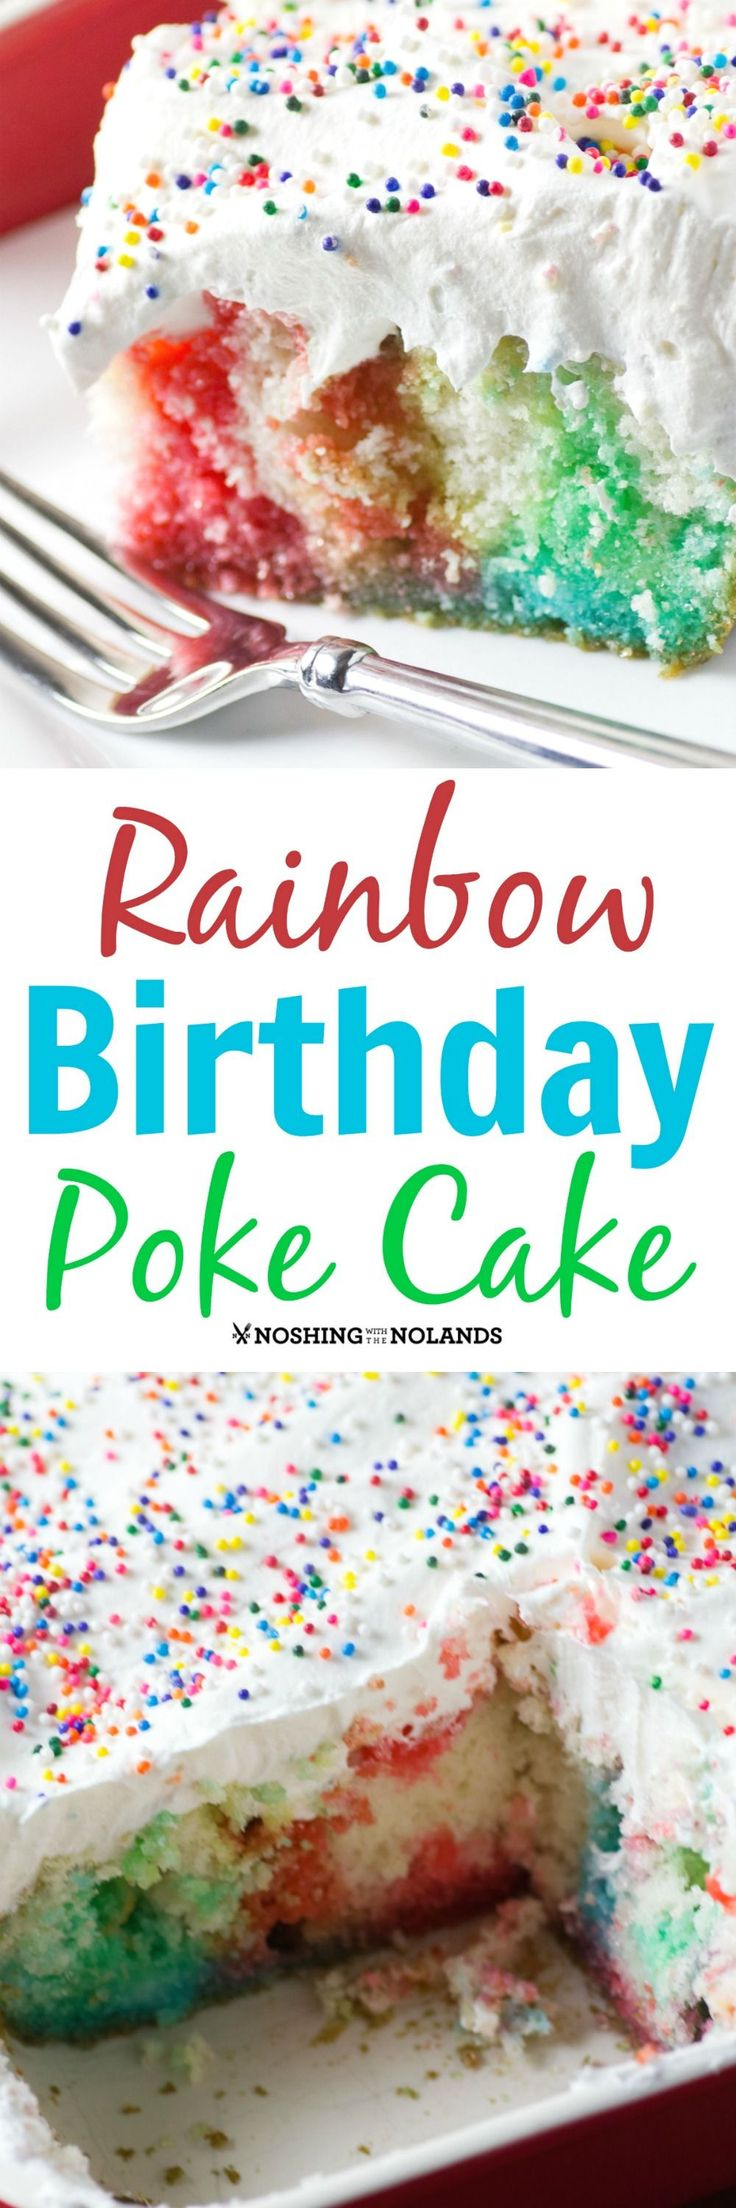 Rainbow Birthday Poke Cake by Noshing With The Nolands is a fun cake that young and old alike will love! Perfect for any occasion!